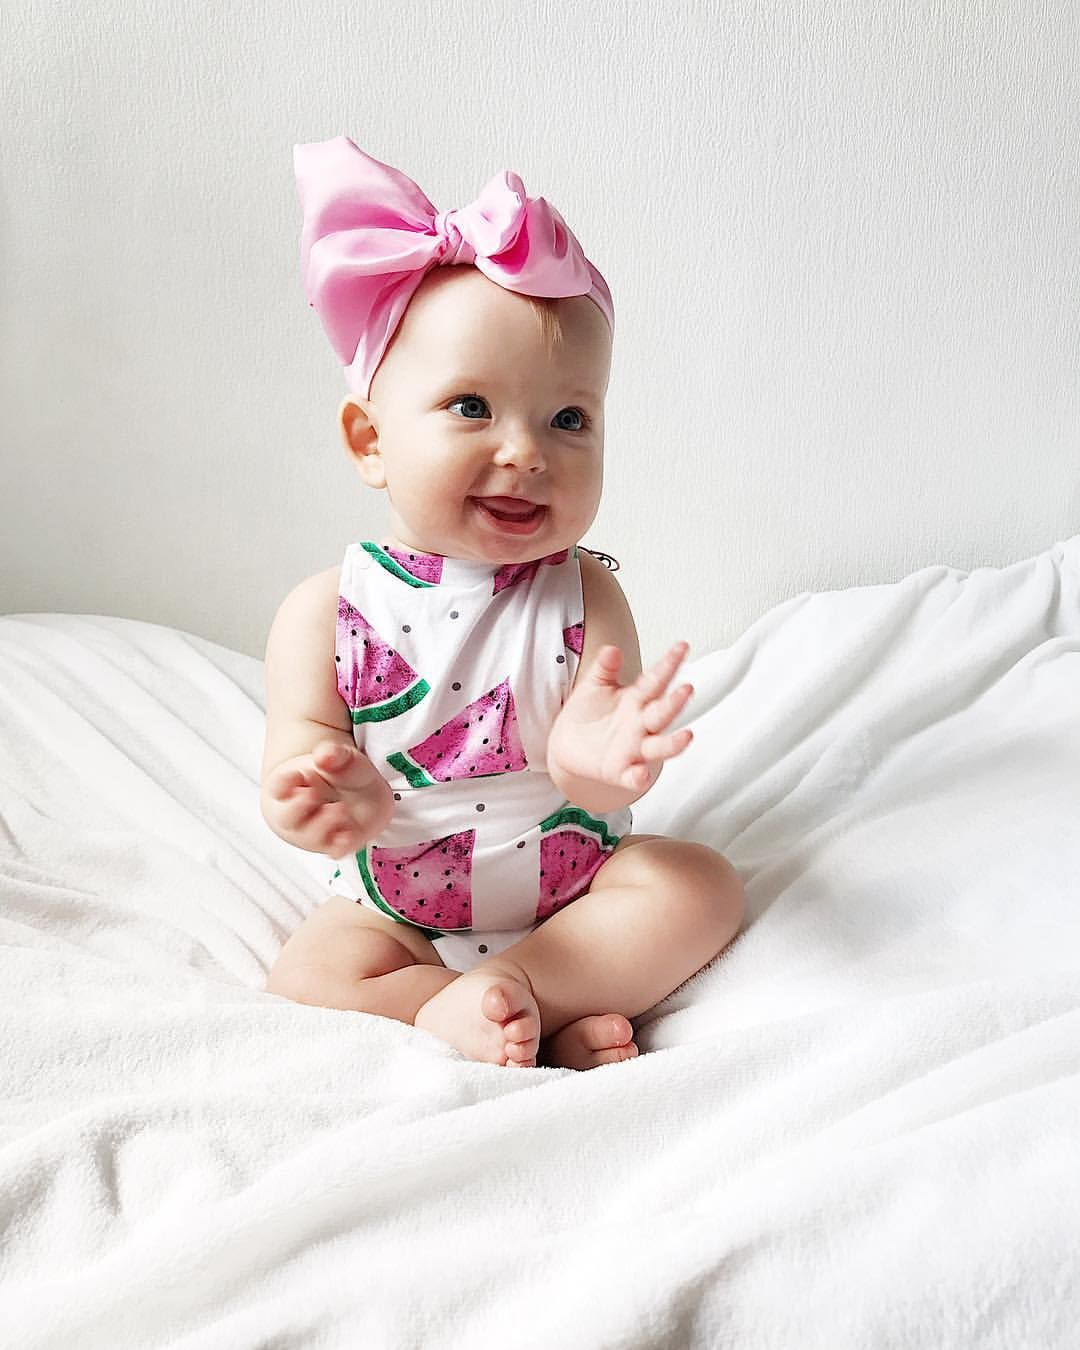 cute baby in a watermelon outfit and big pink bow sitting ...